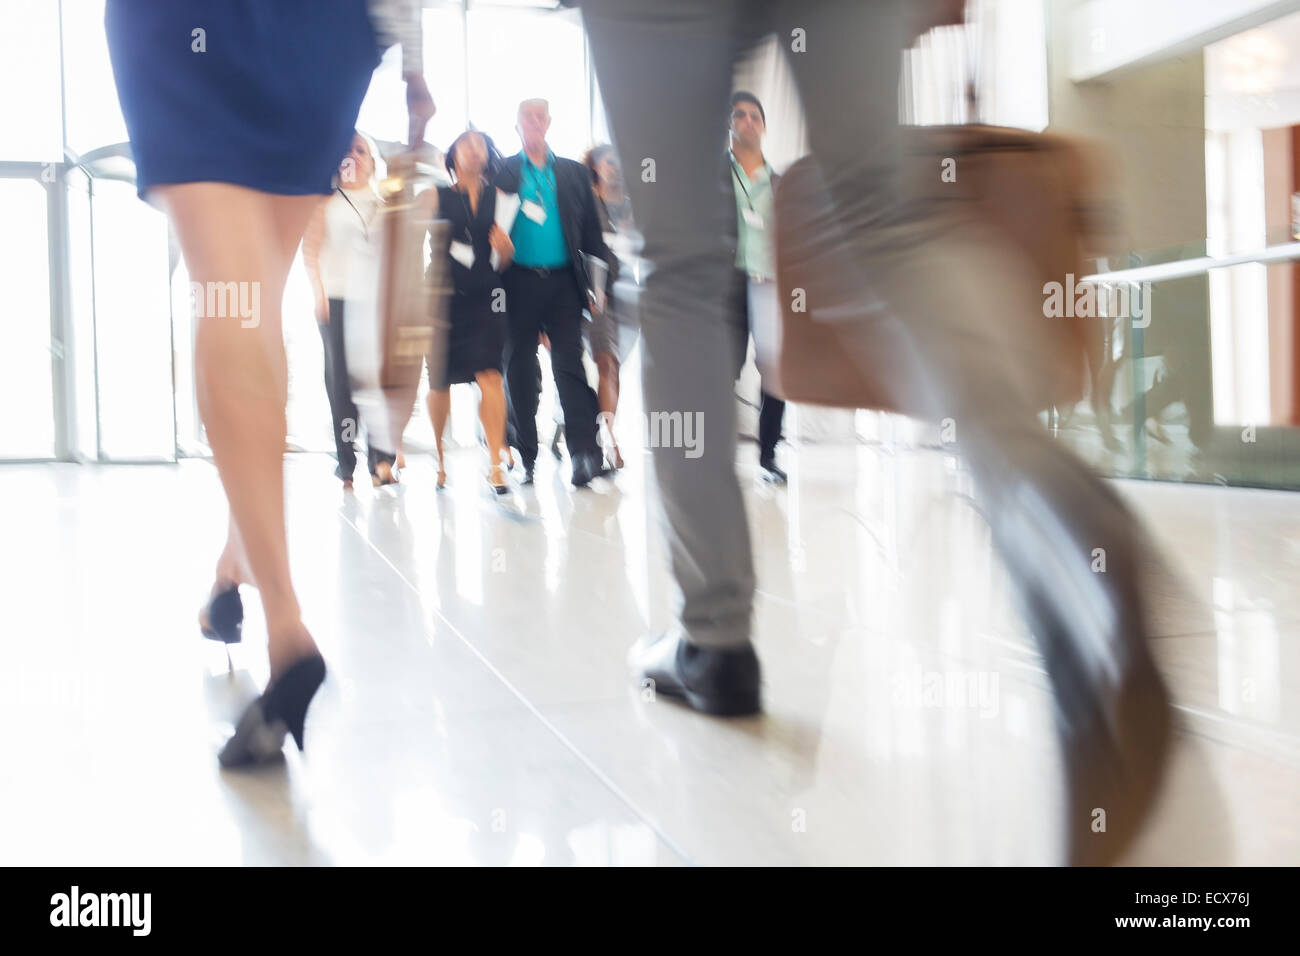 Legs of businesswoman and businessman carrying hand luggage walking through lobby of conference center - Stock Image